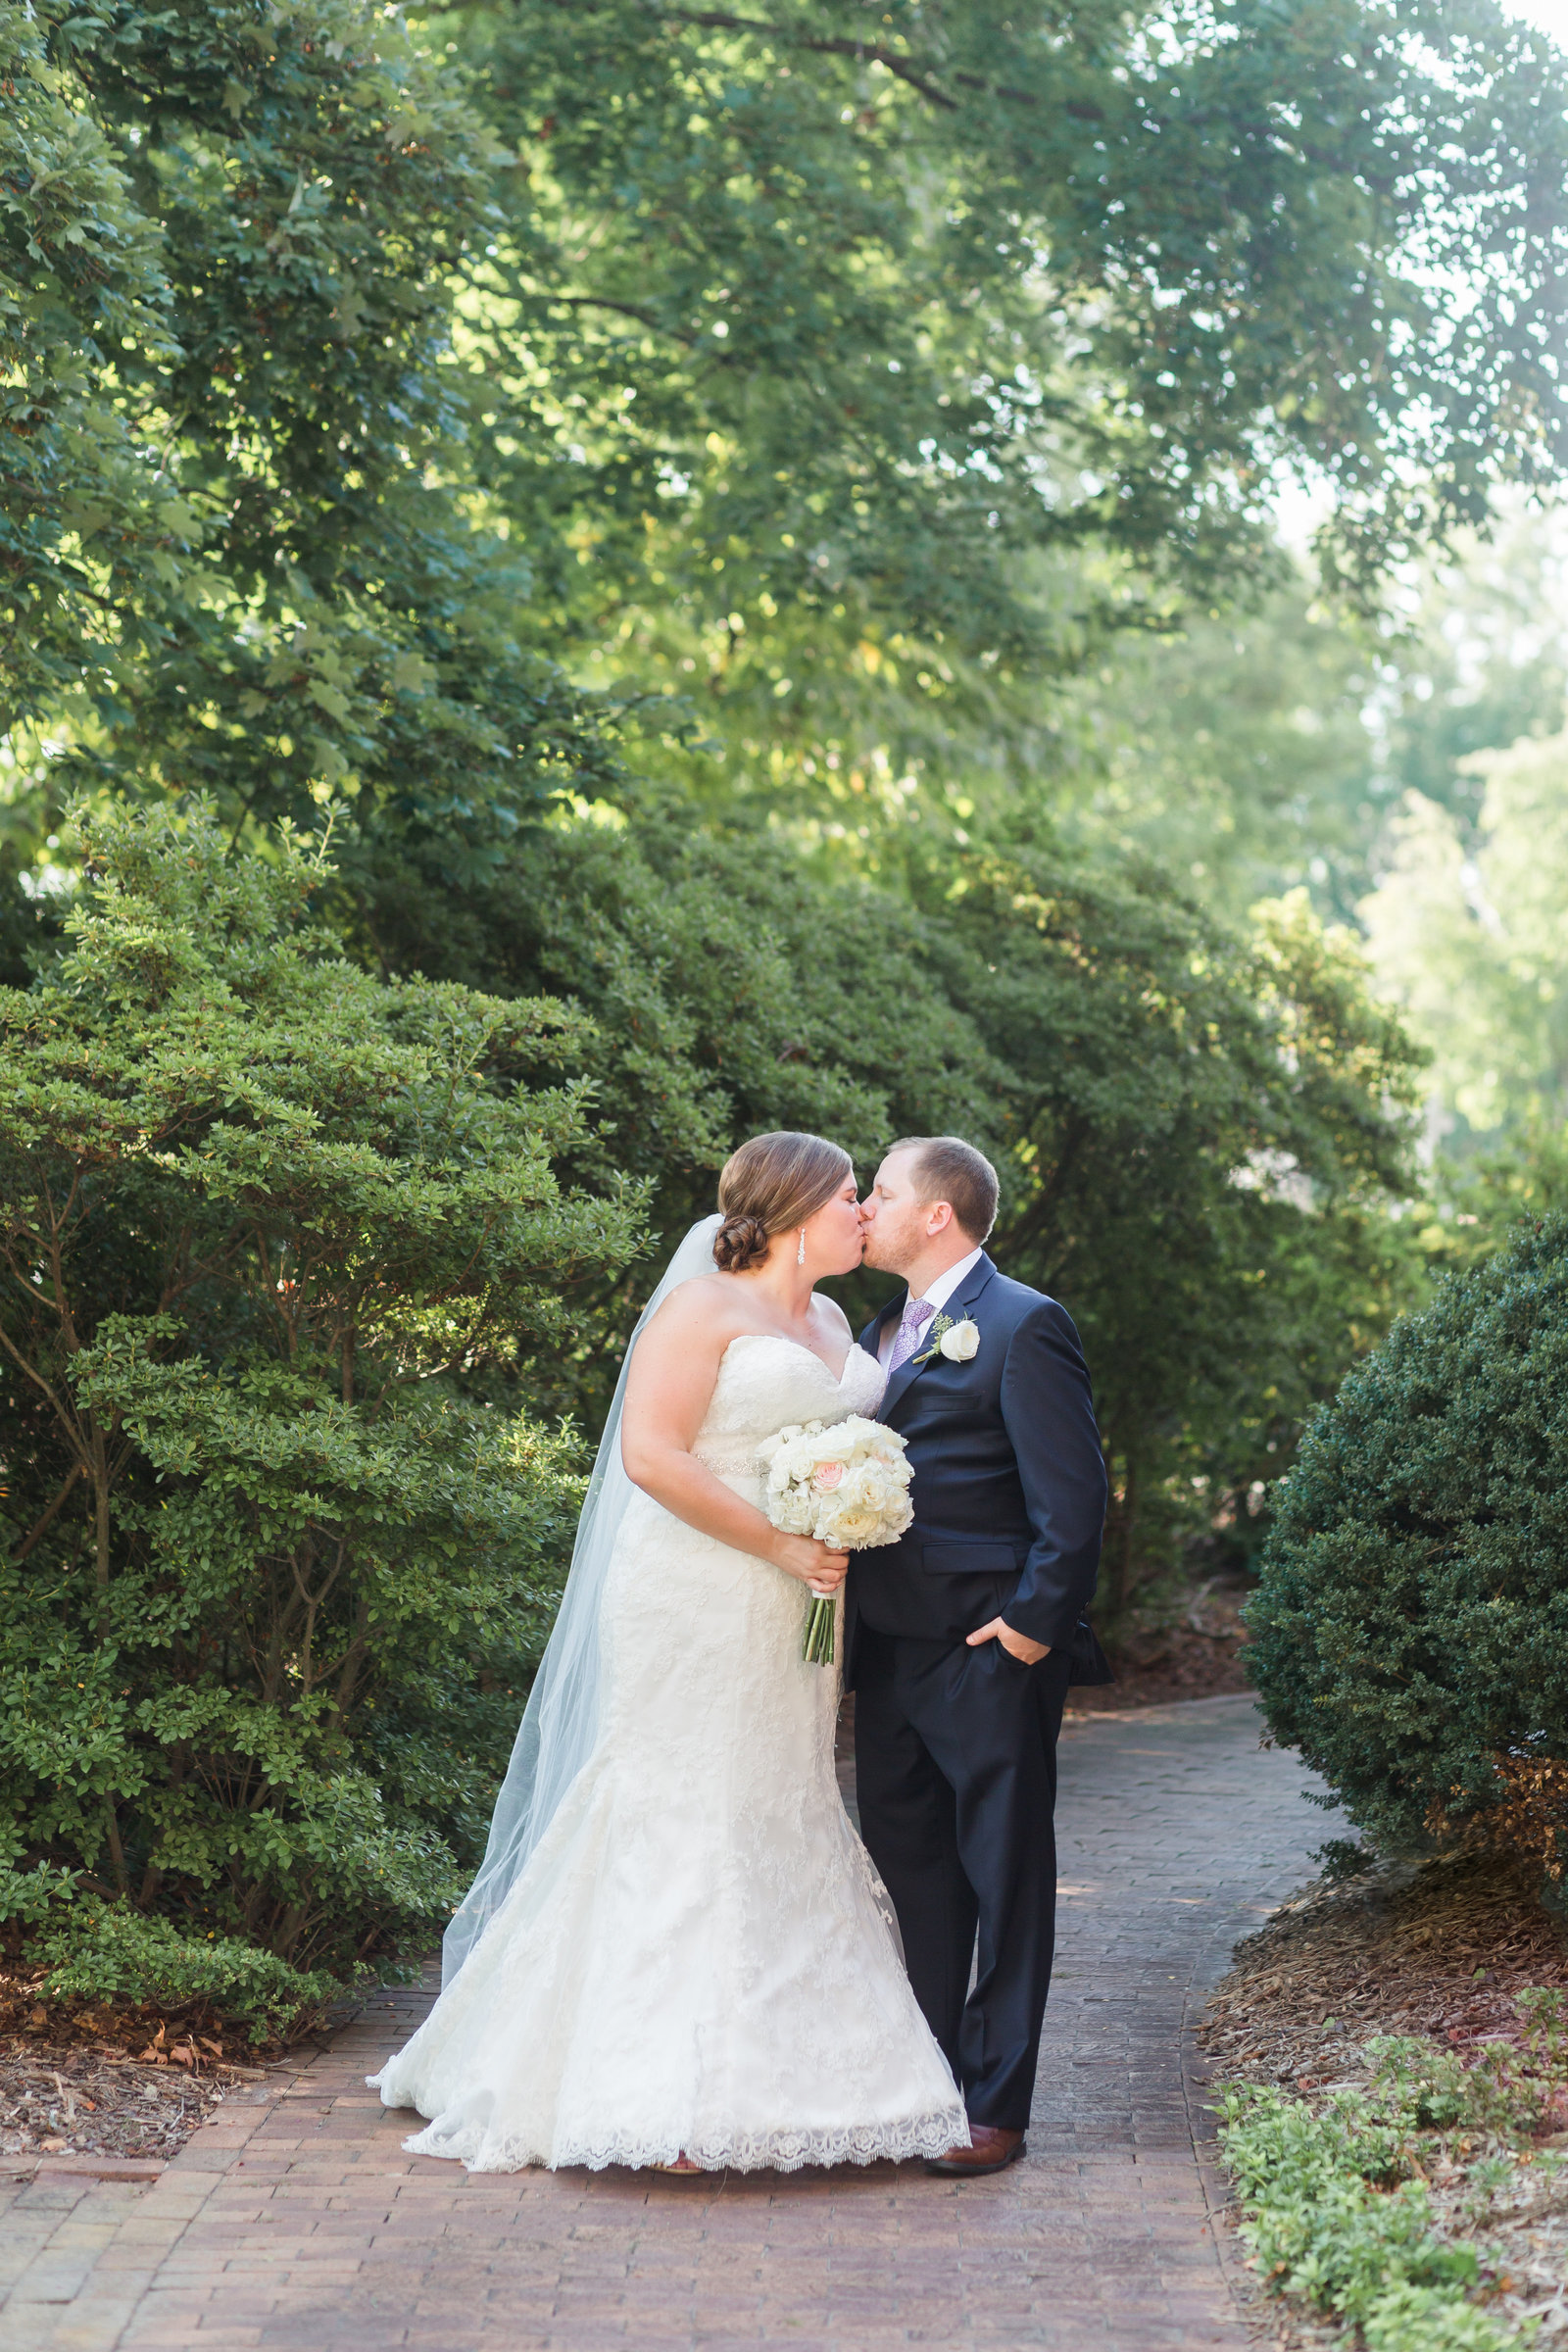 Chris and Sheena Married-Samantha Laffoon Photography-58